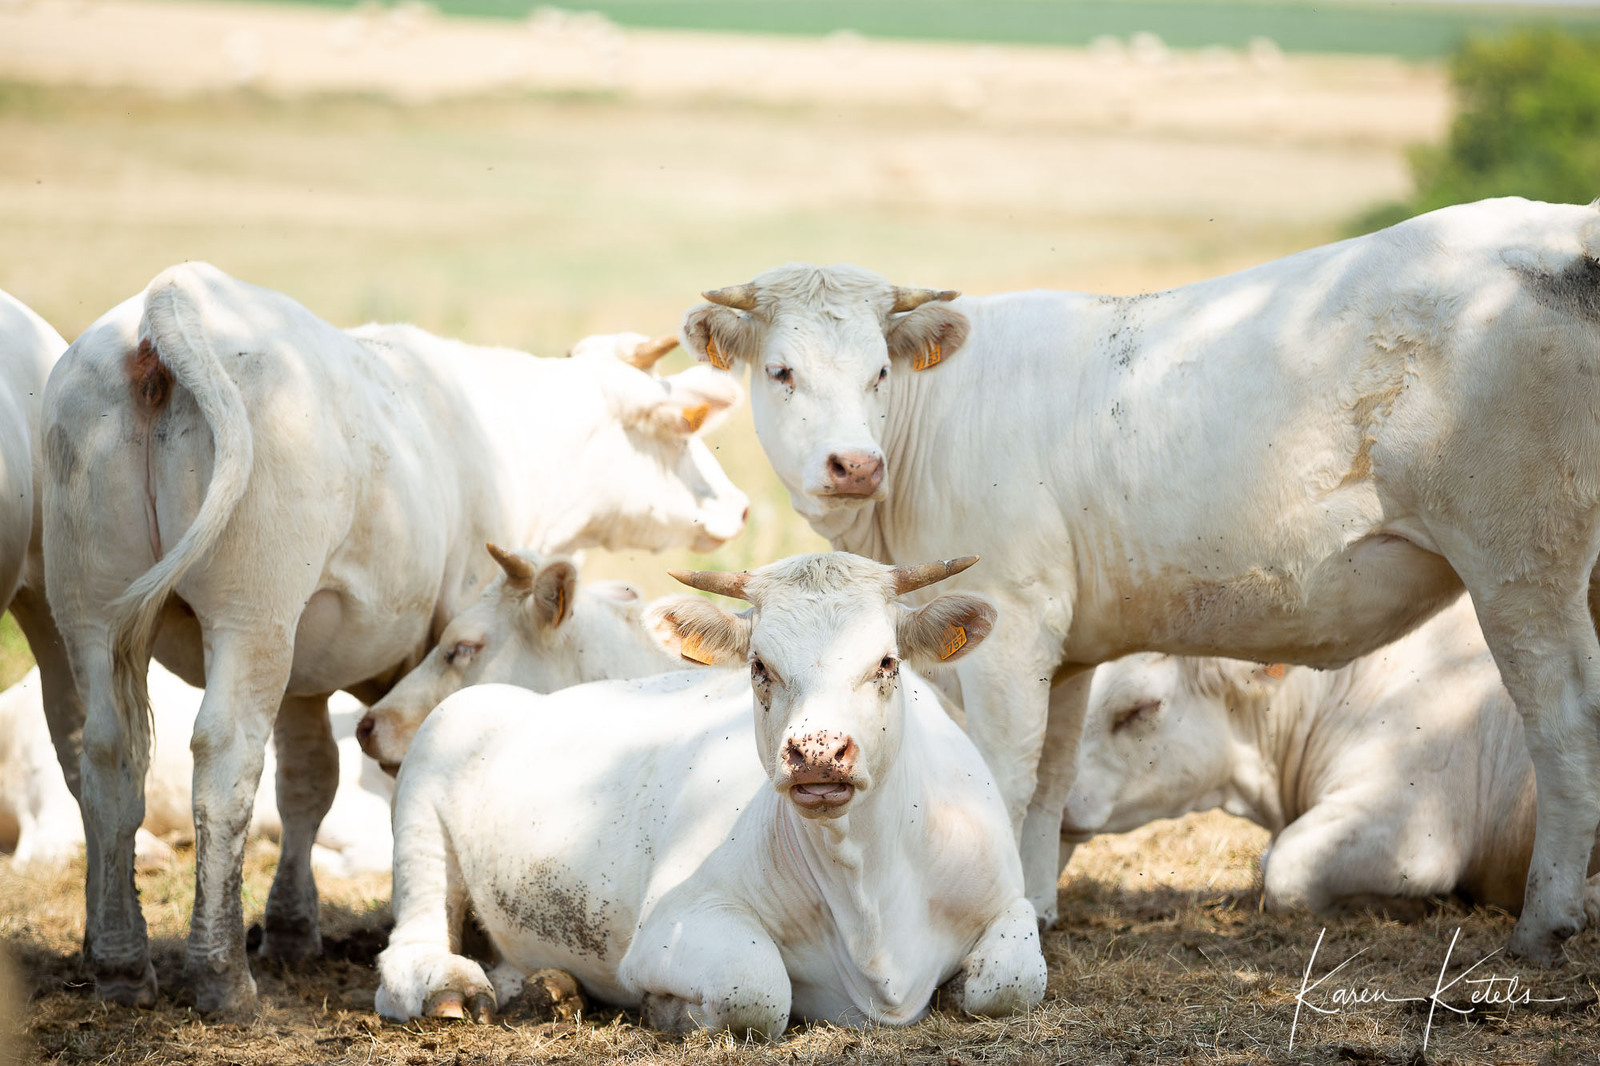 Portrait of white cows, sheltering in shadow in summer by Karen Ketels